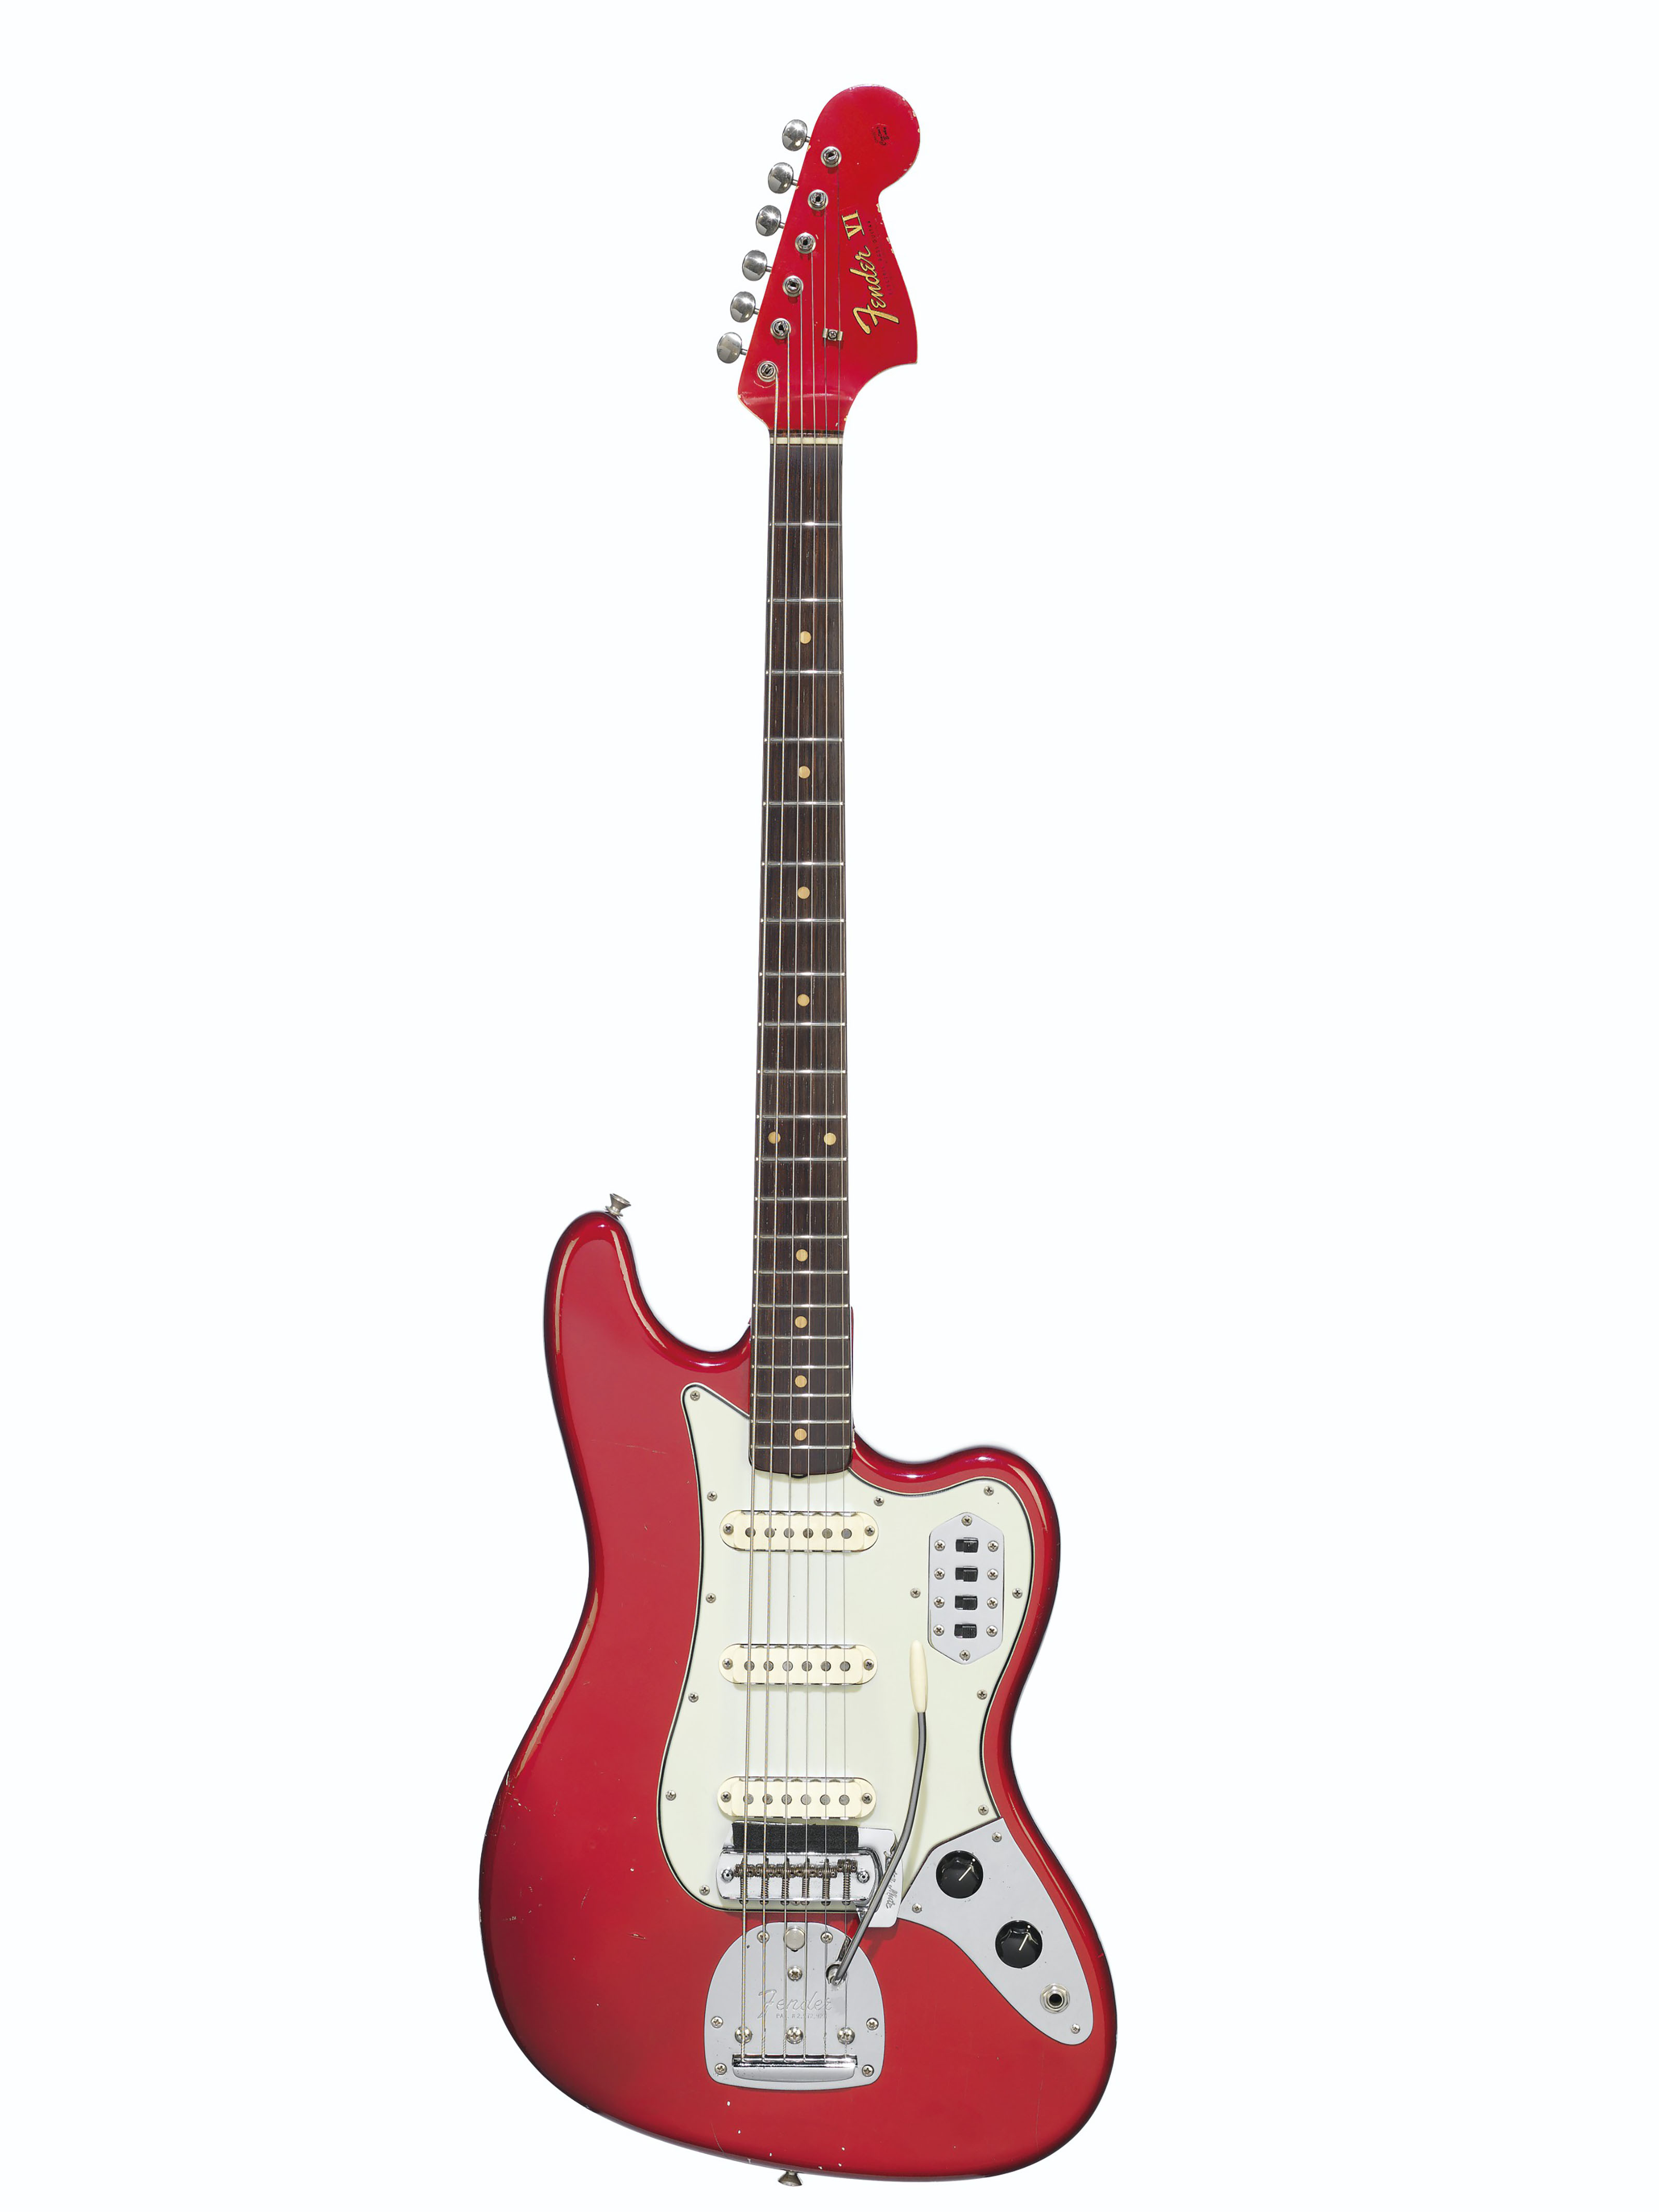 fender electric instrument company fullerton 1963 a solid body 6 string electric bass guitar. Black Bedroom Furniture Sets. Home Design Ideas